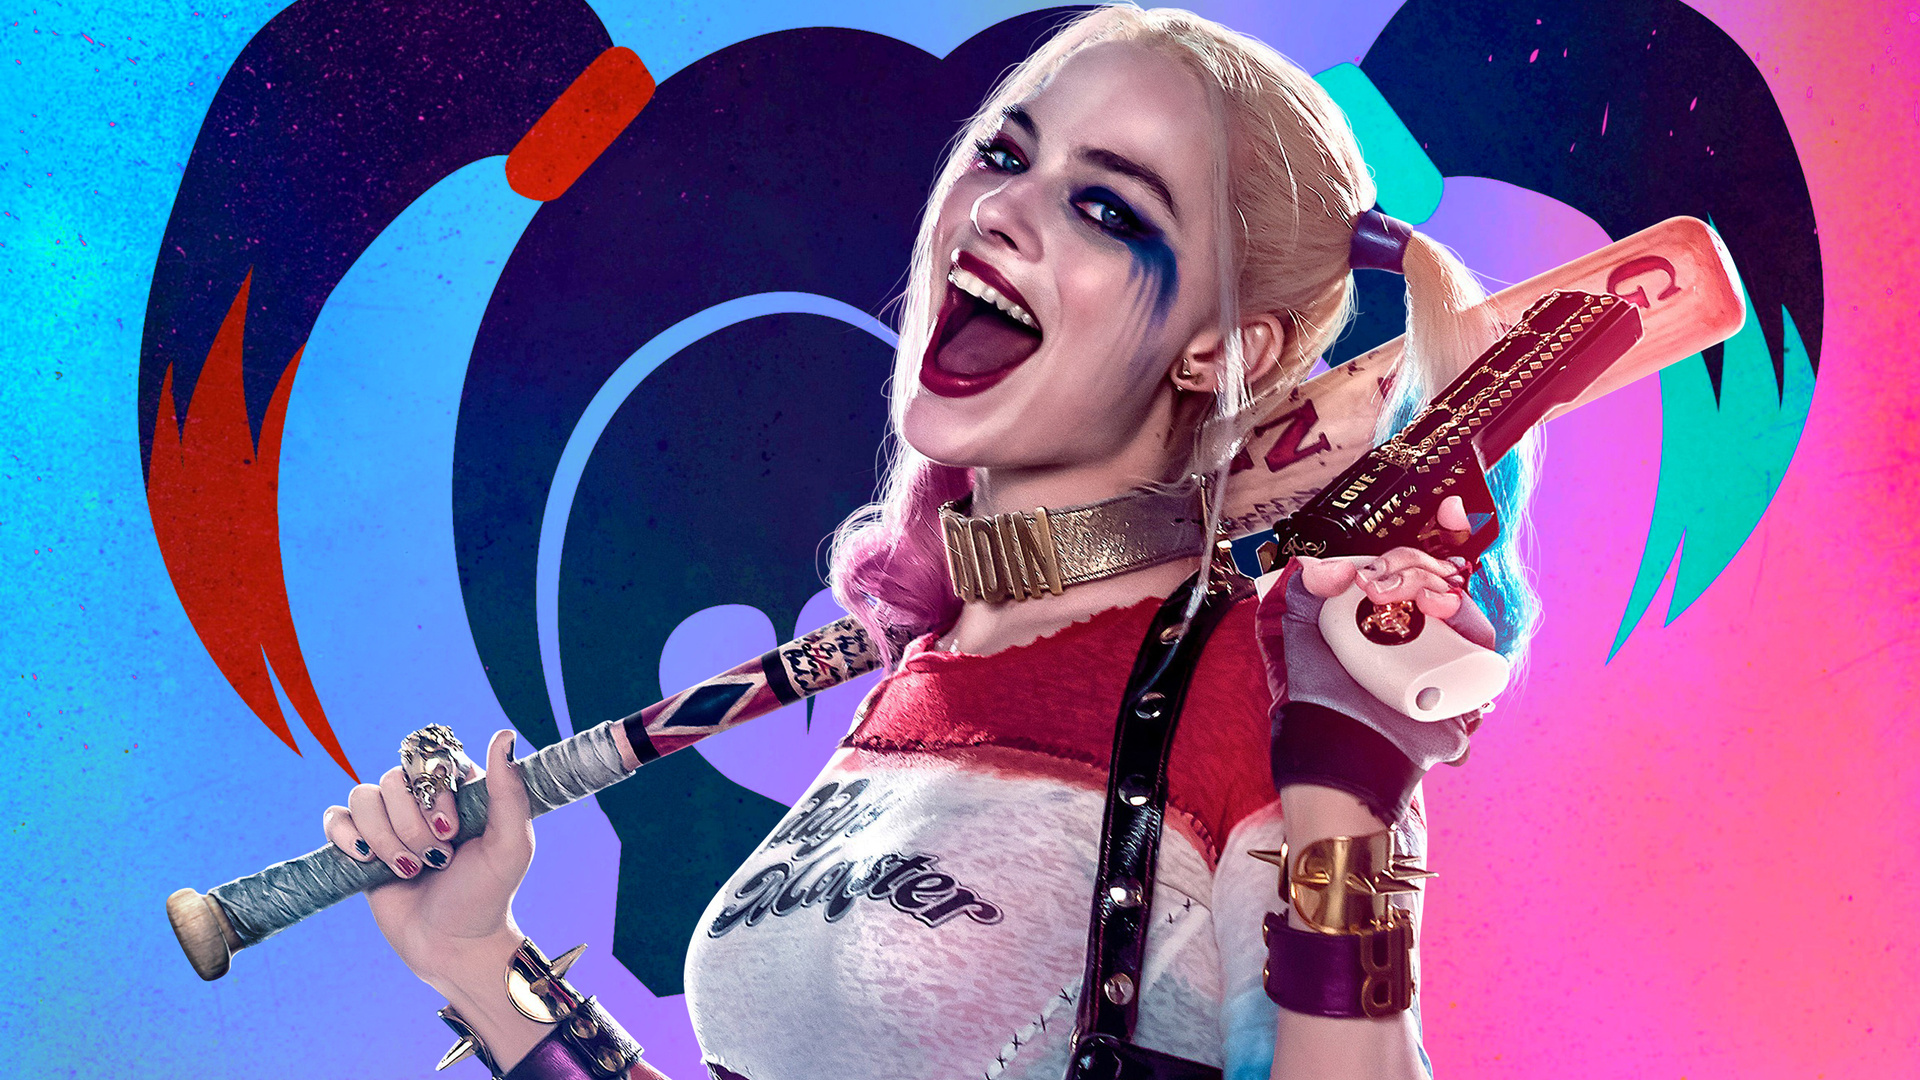 1920x1080 Suicide Squad Harley Quinn Laptop Full HD 1080P